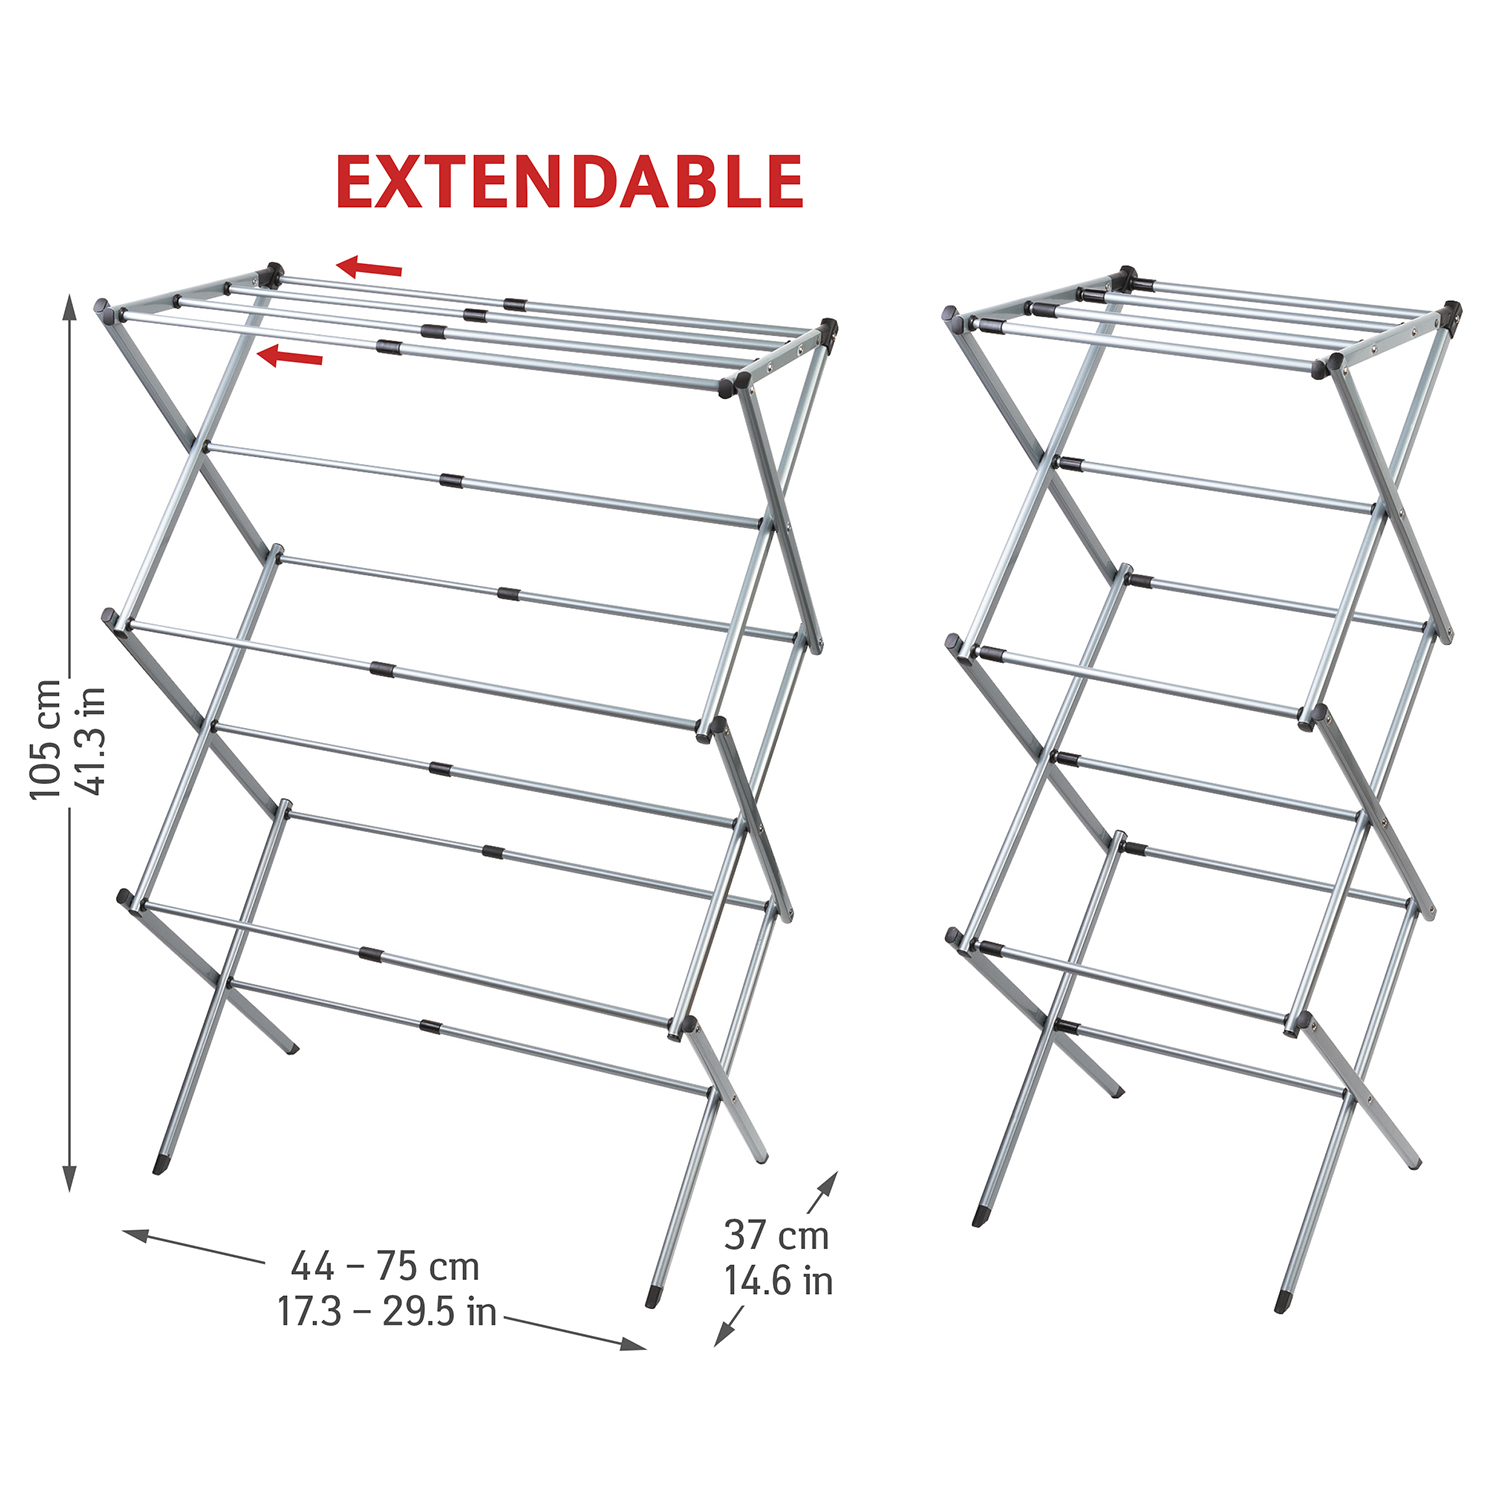 Art Moon Gobi Extendable Telescopic Clothes Airer Drying